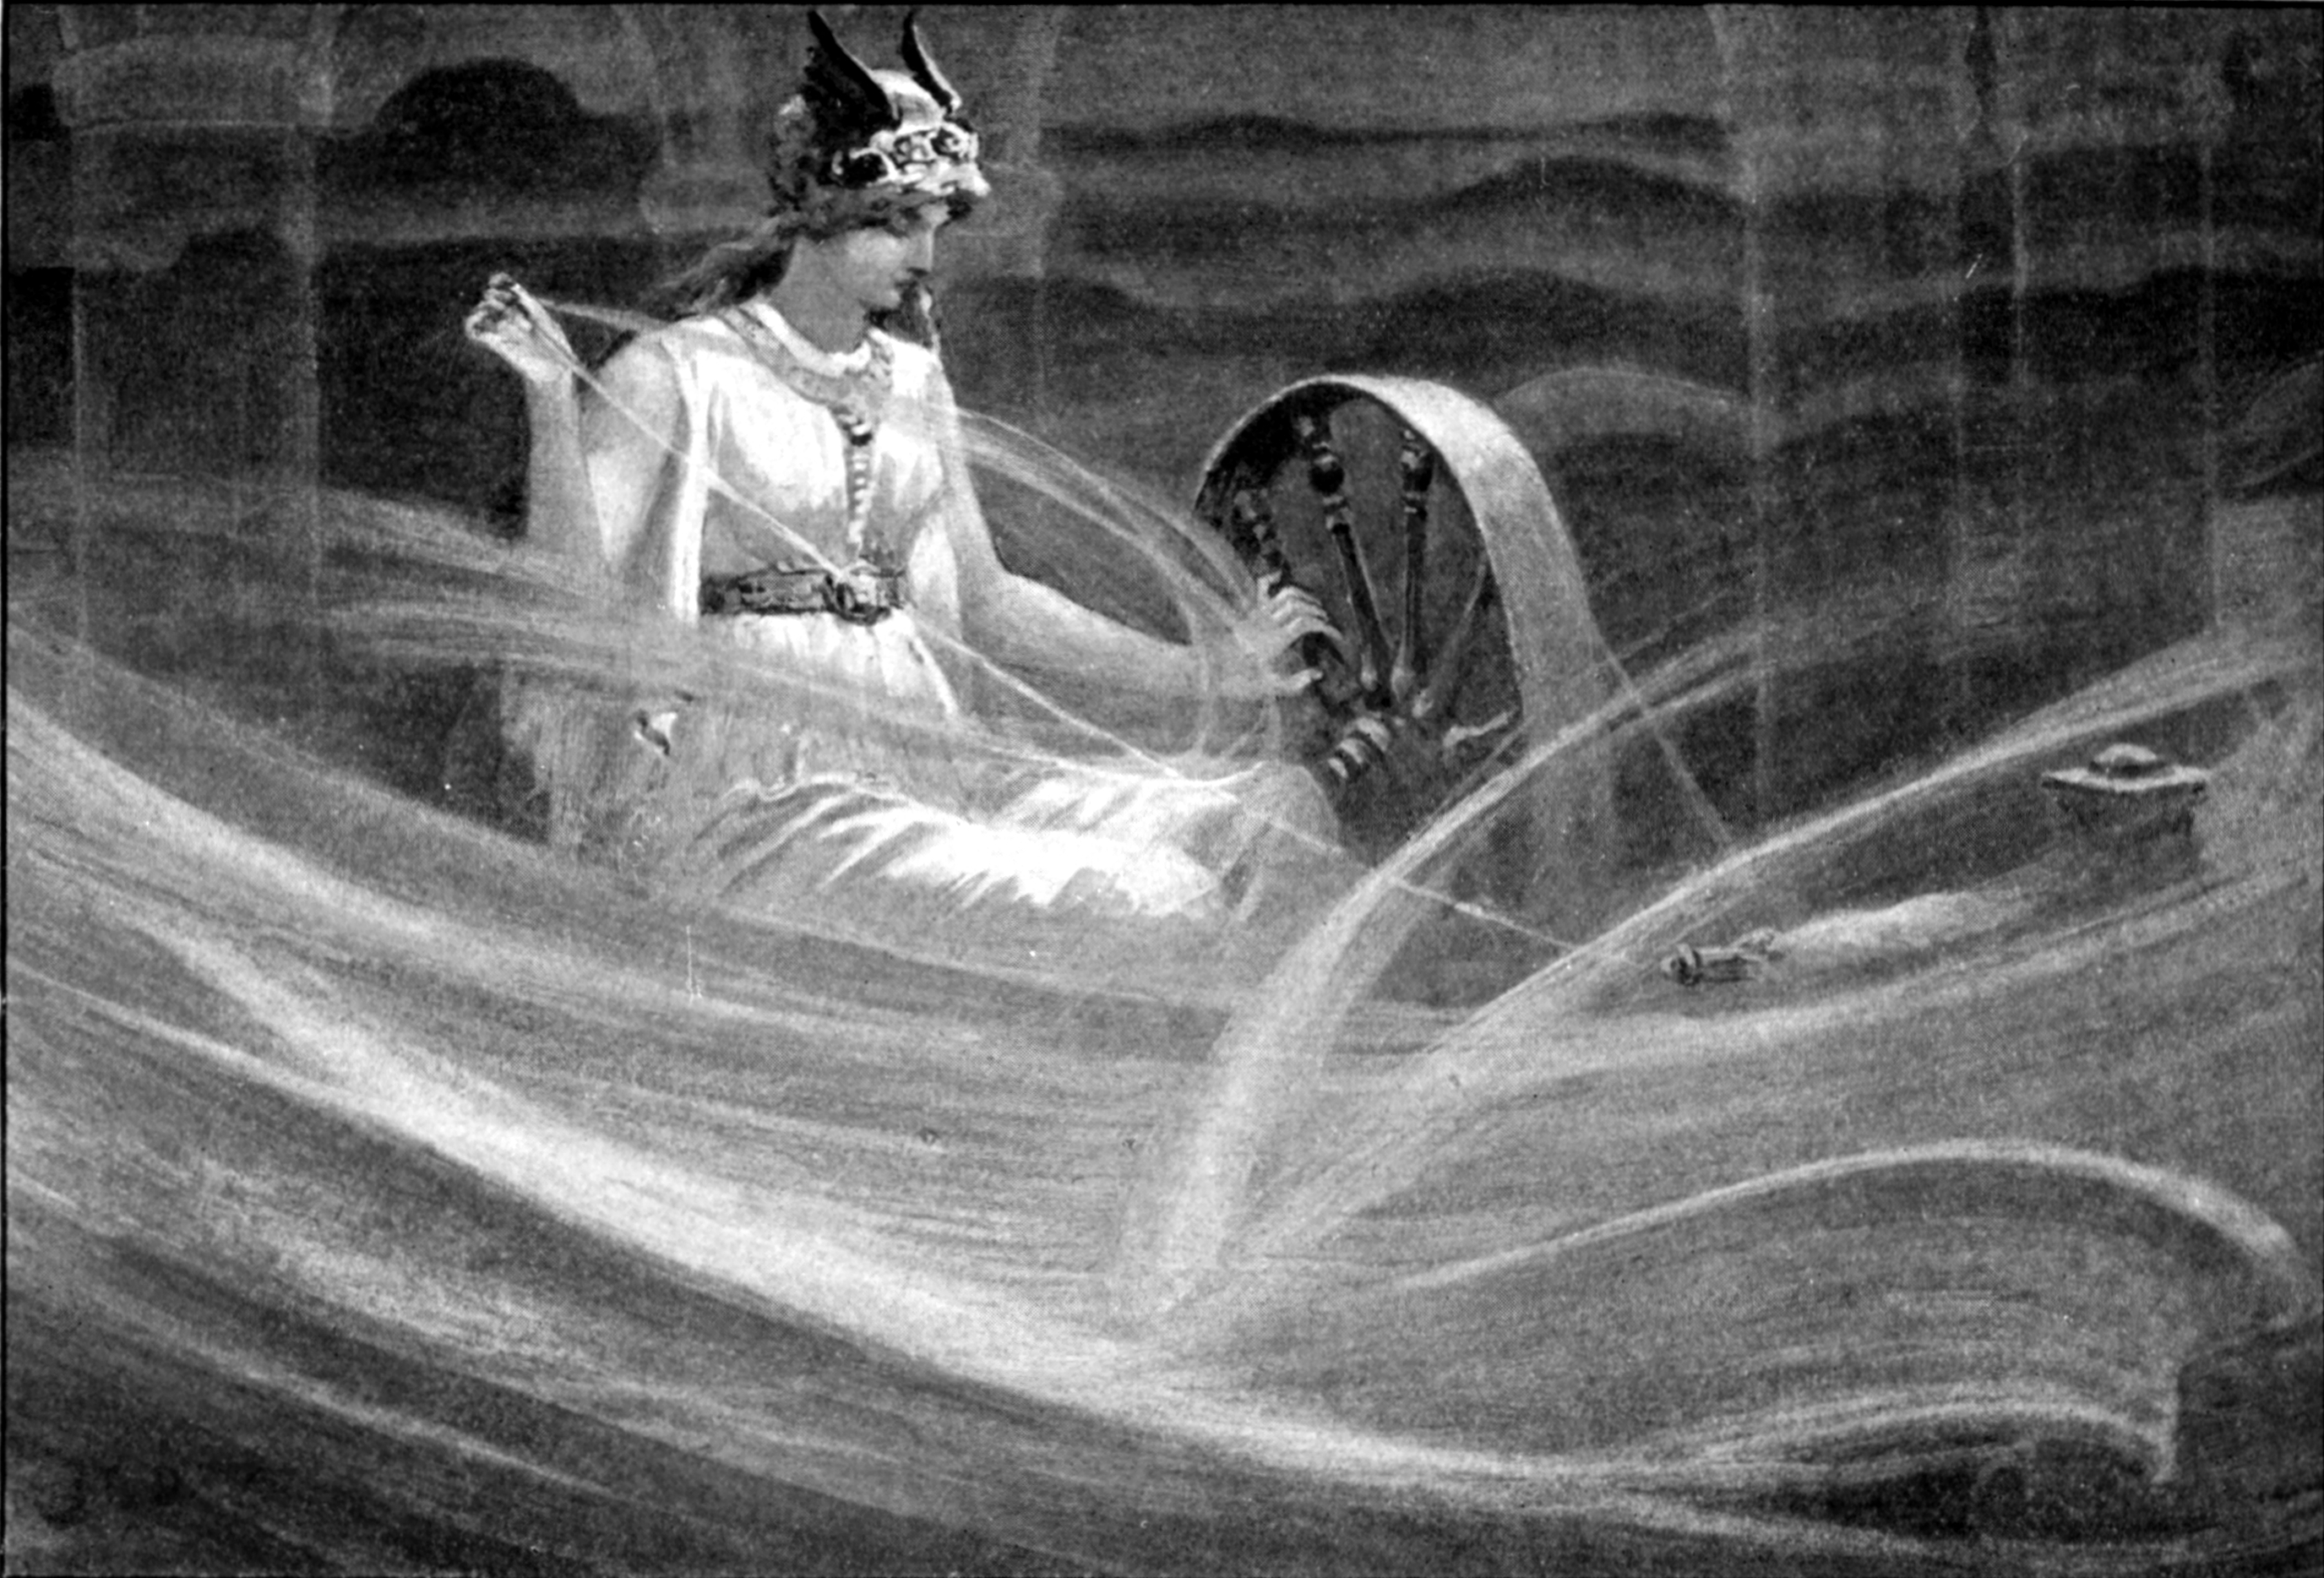 Frigg spinning the clouds, by John Charles Dollman